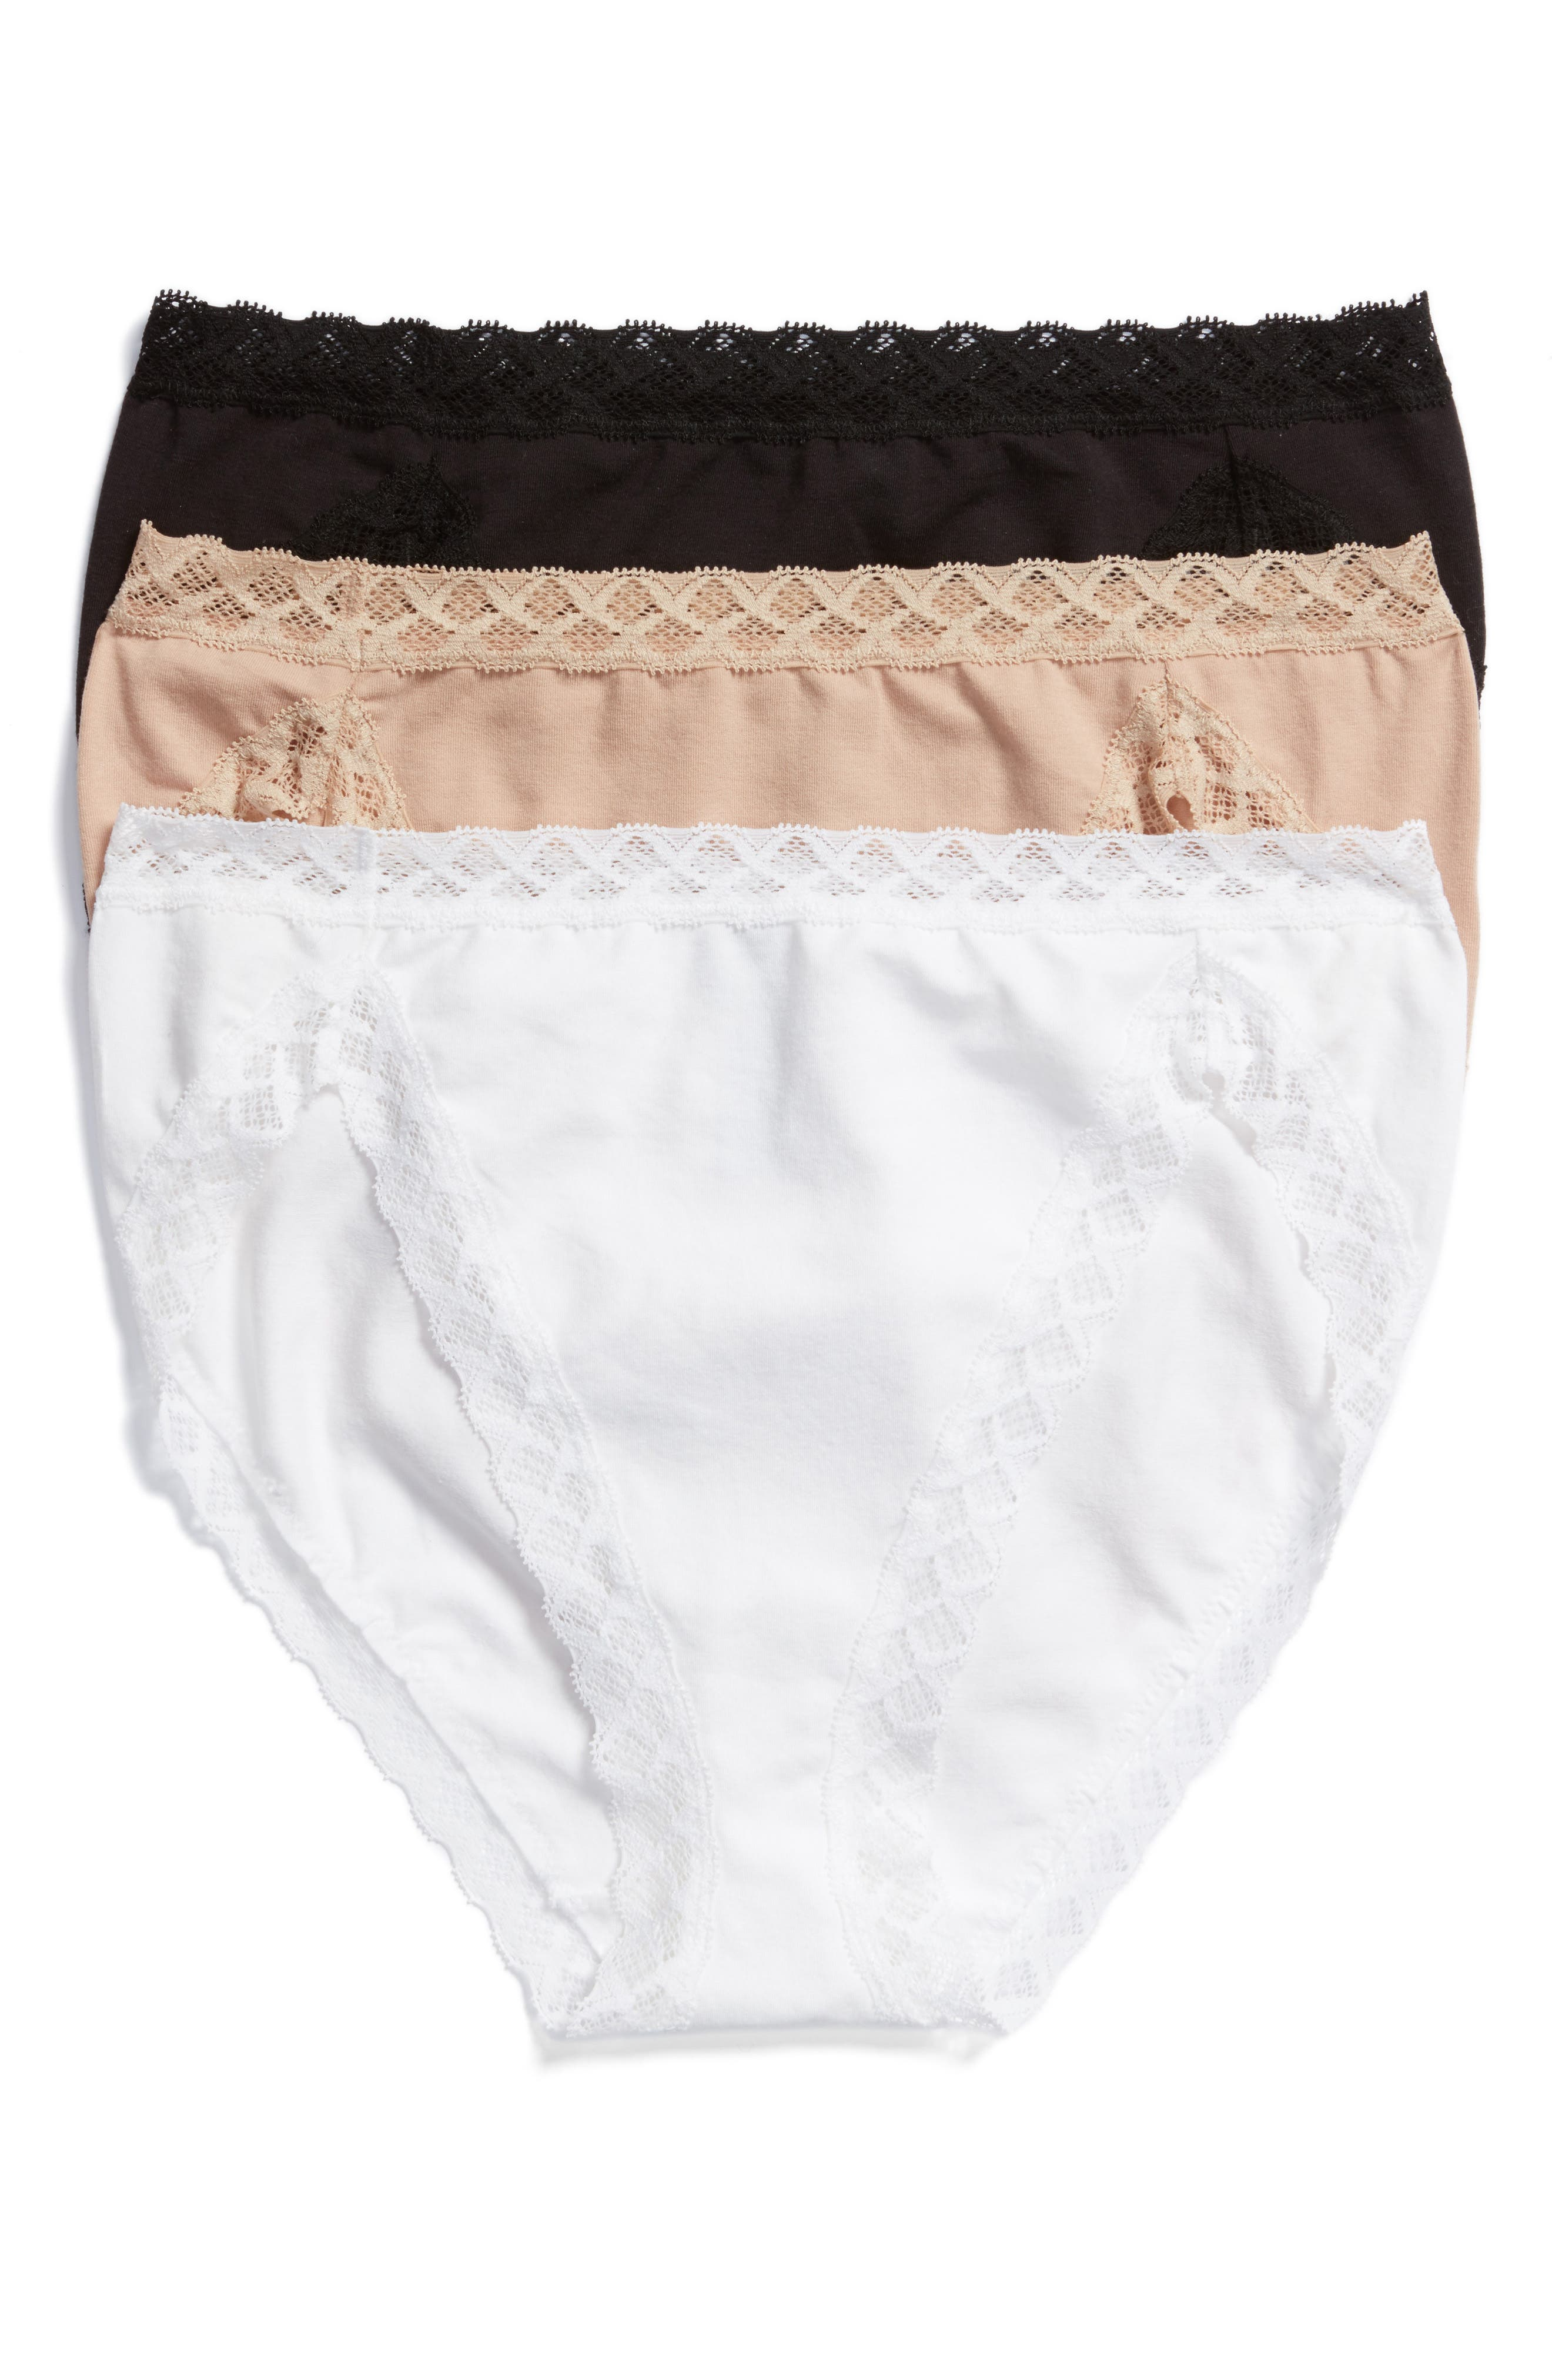 Main Image - Natori 'Bliss' French Cut Briefs (3-Pack)